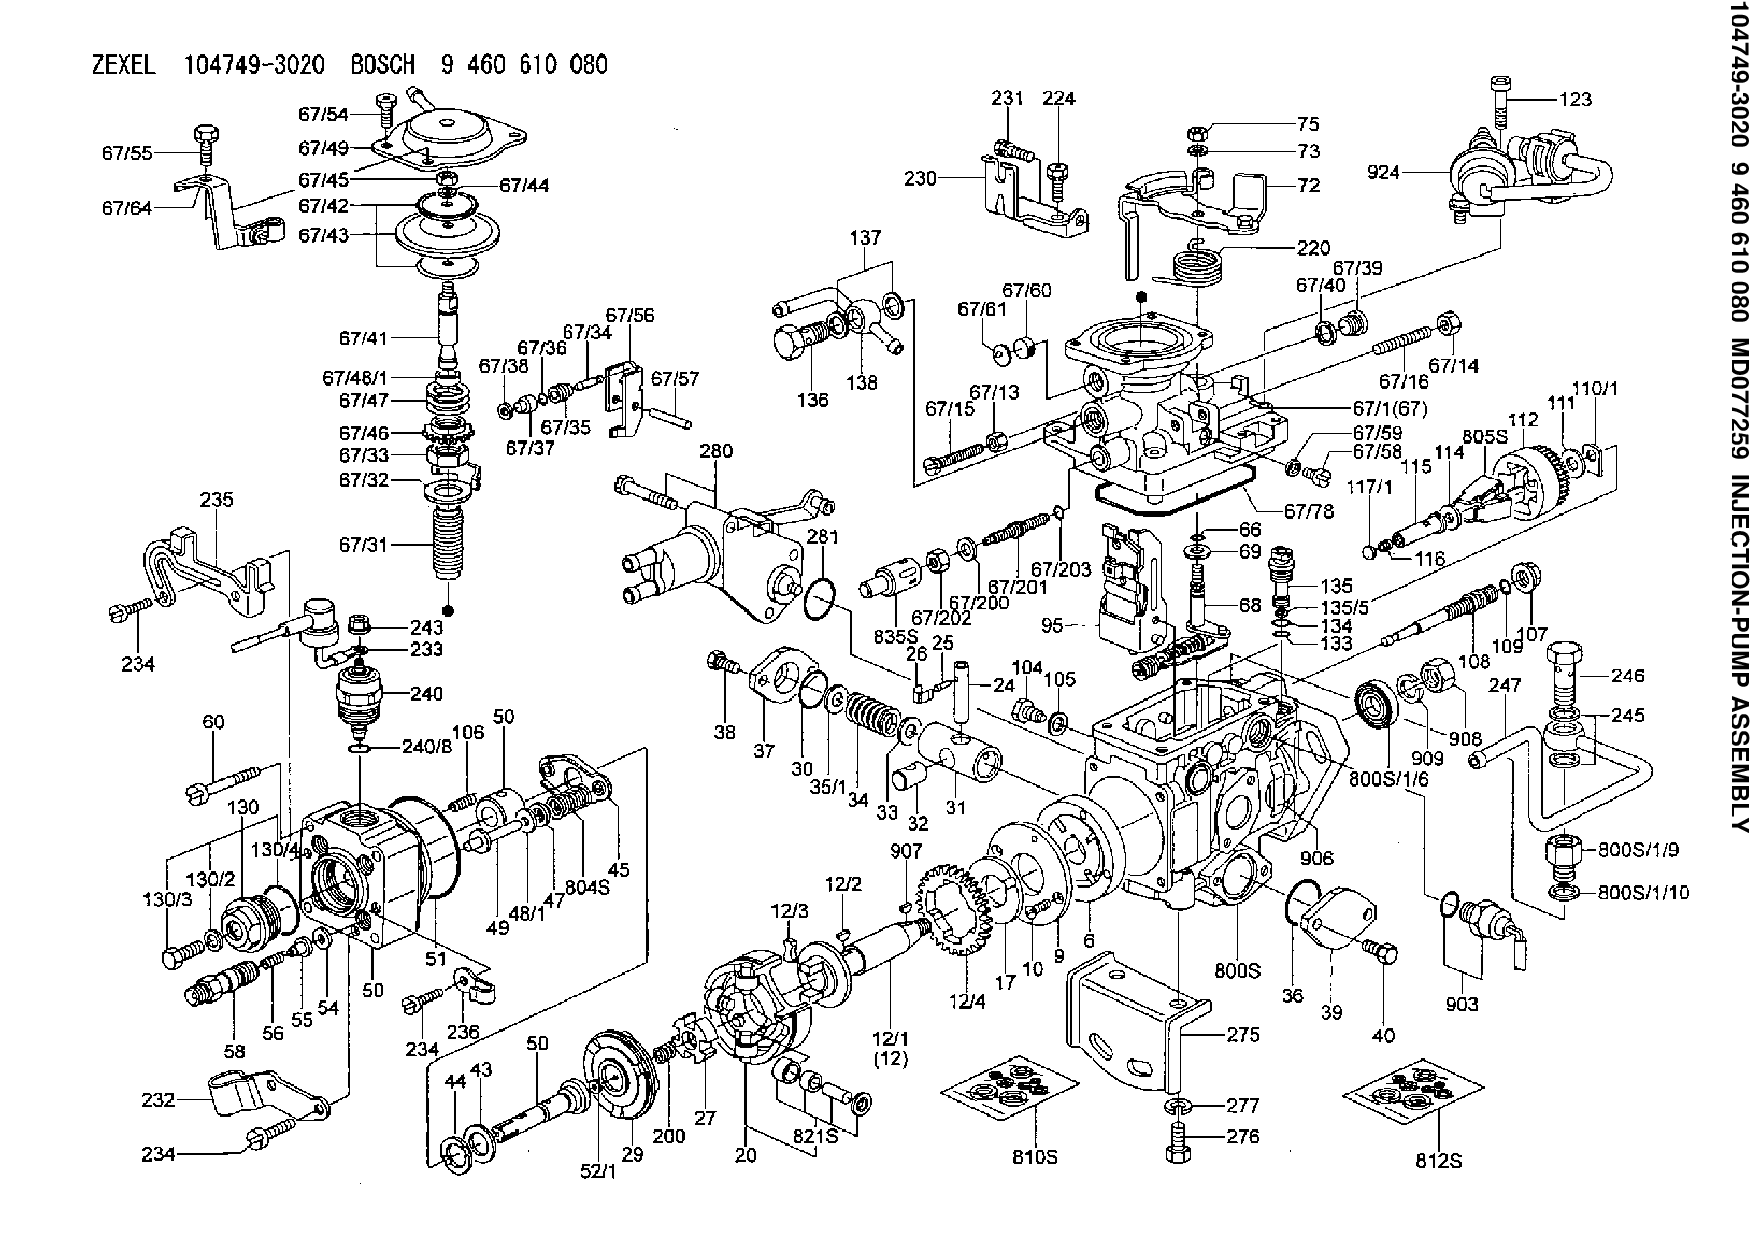 9 460 610 080 Fuel Distributor Injection